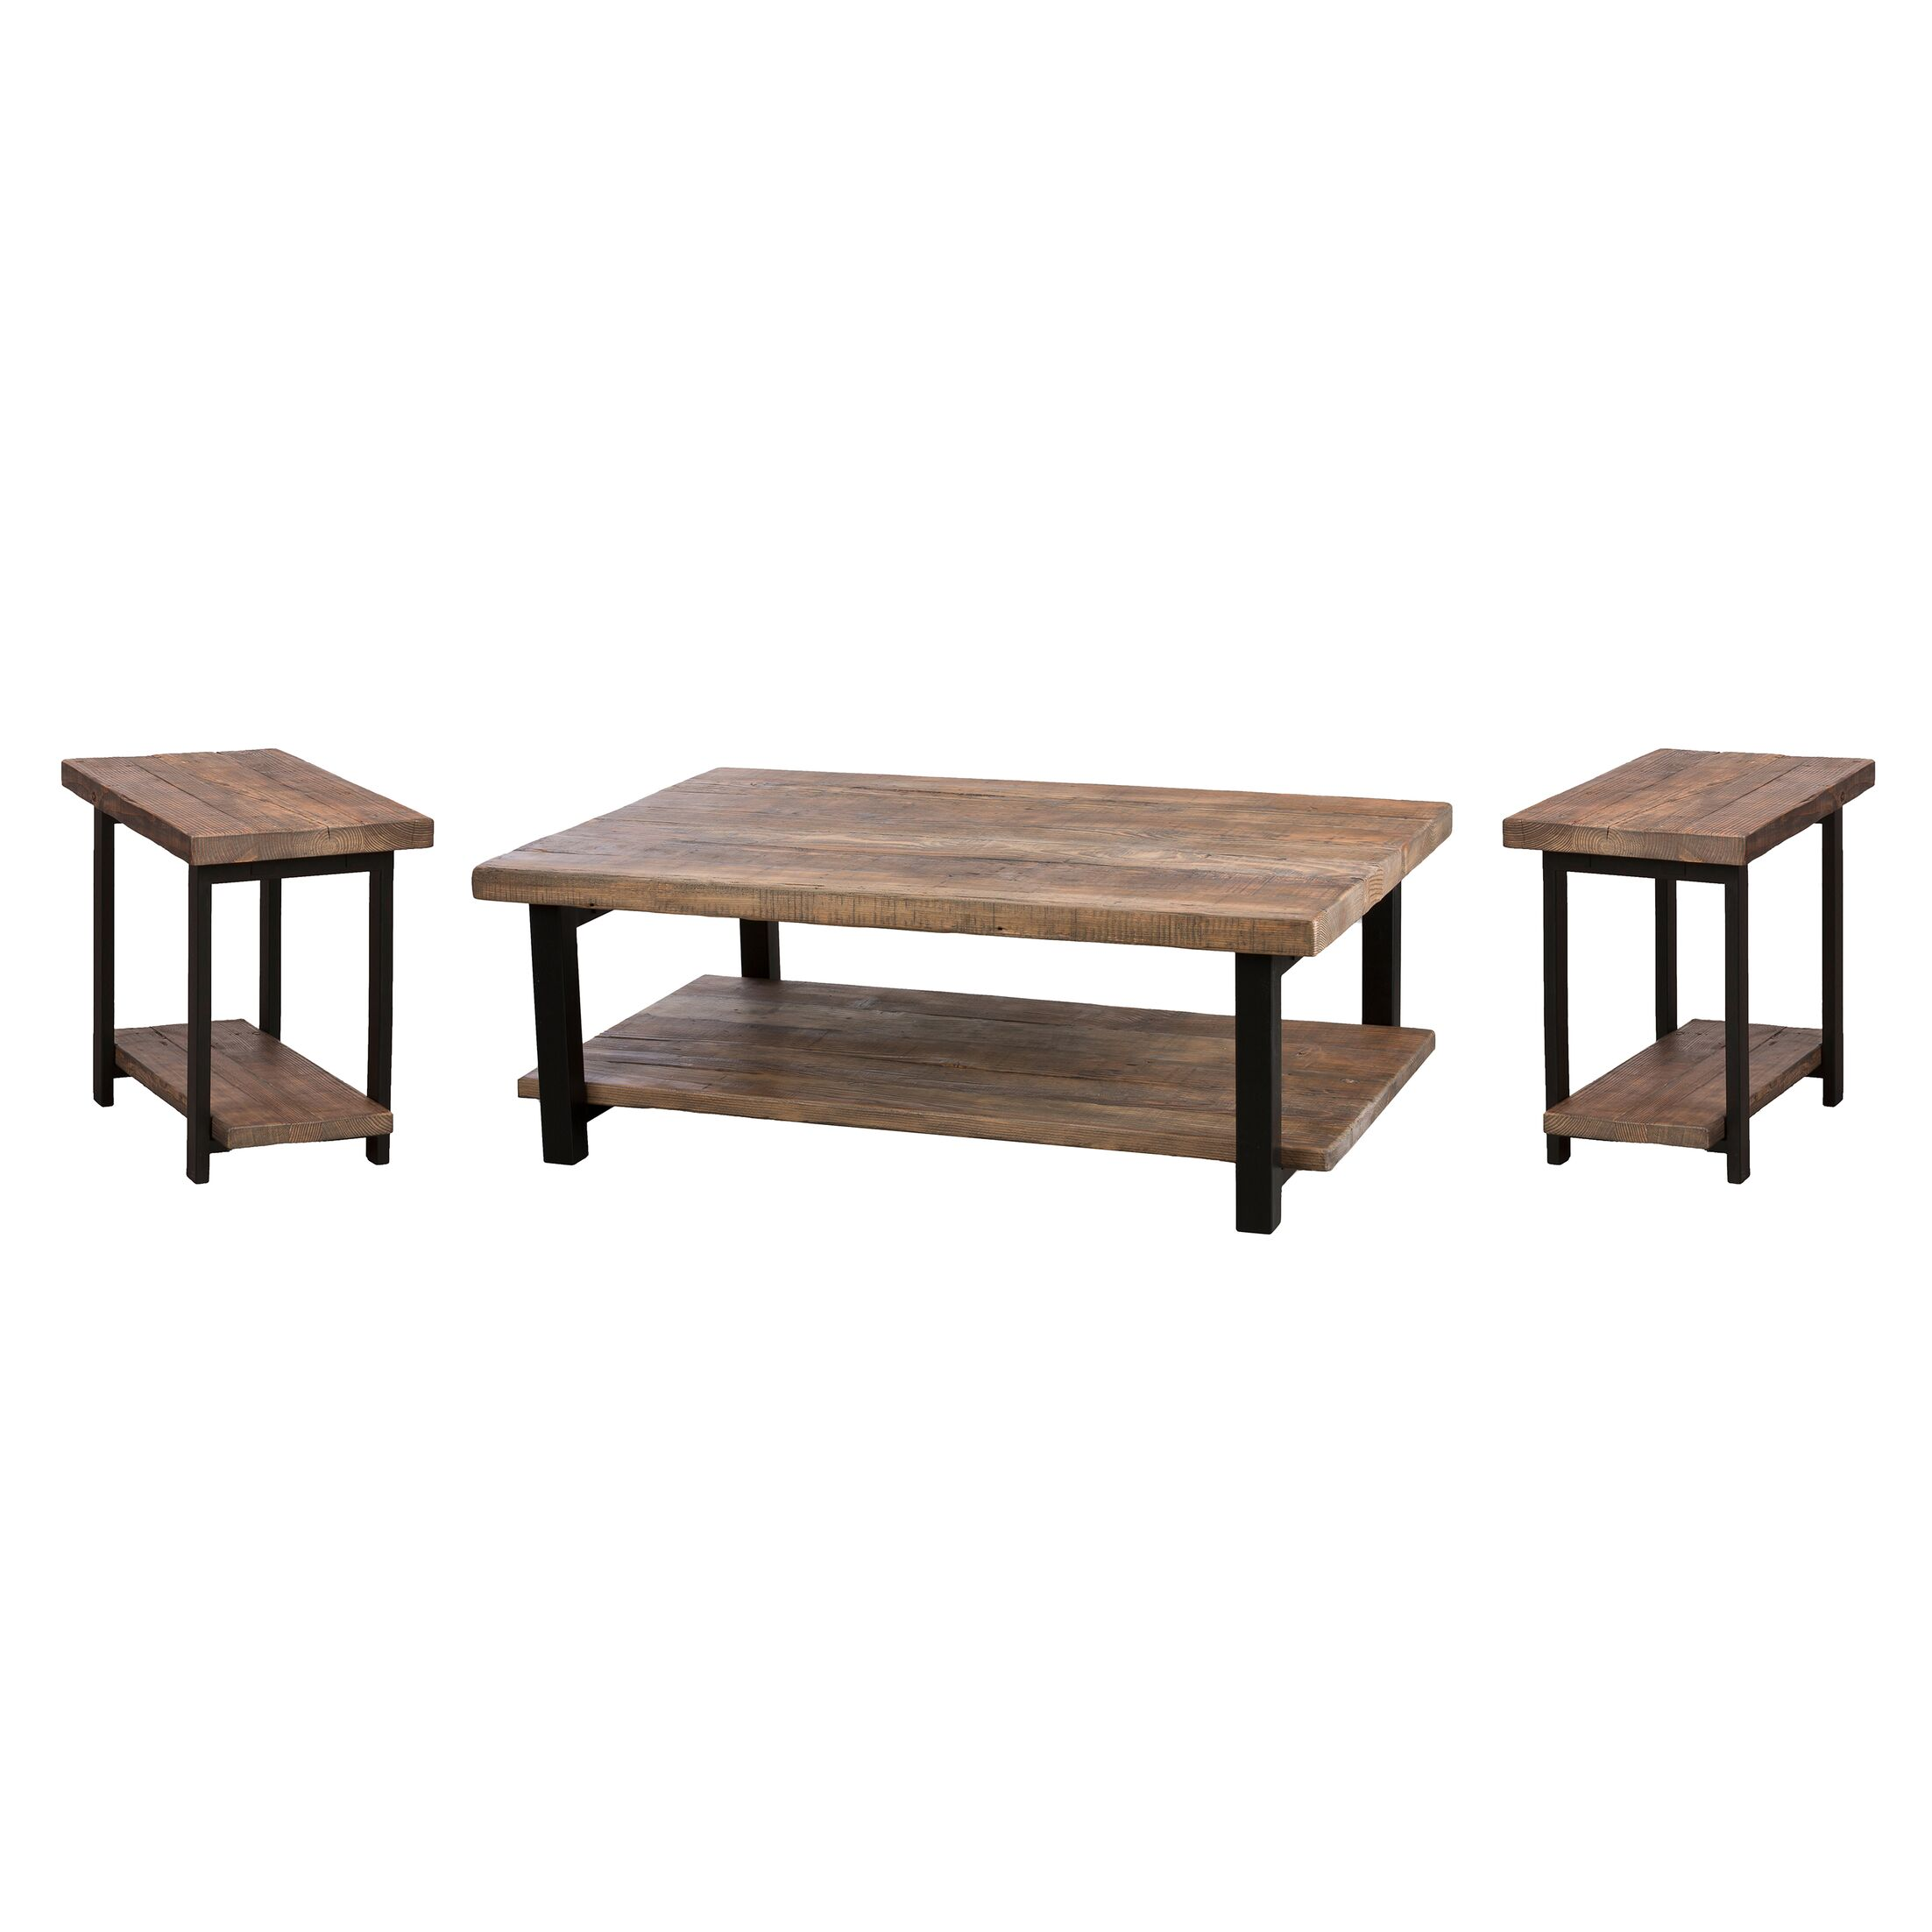 Borica 3 Piece Coffee Table Set